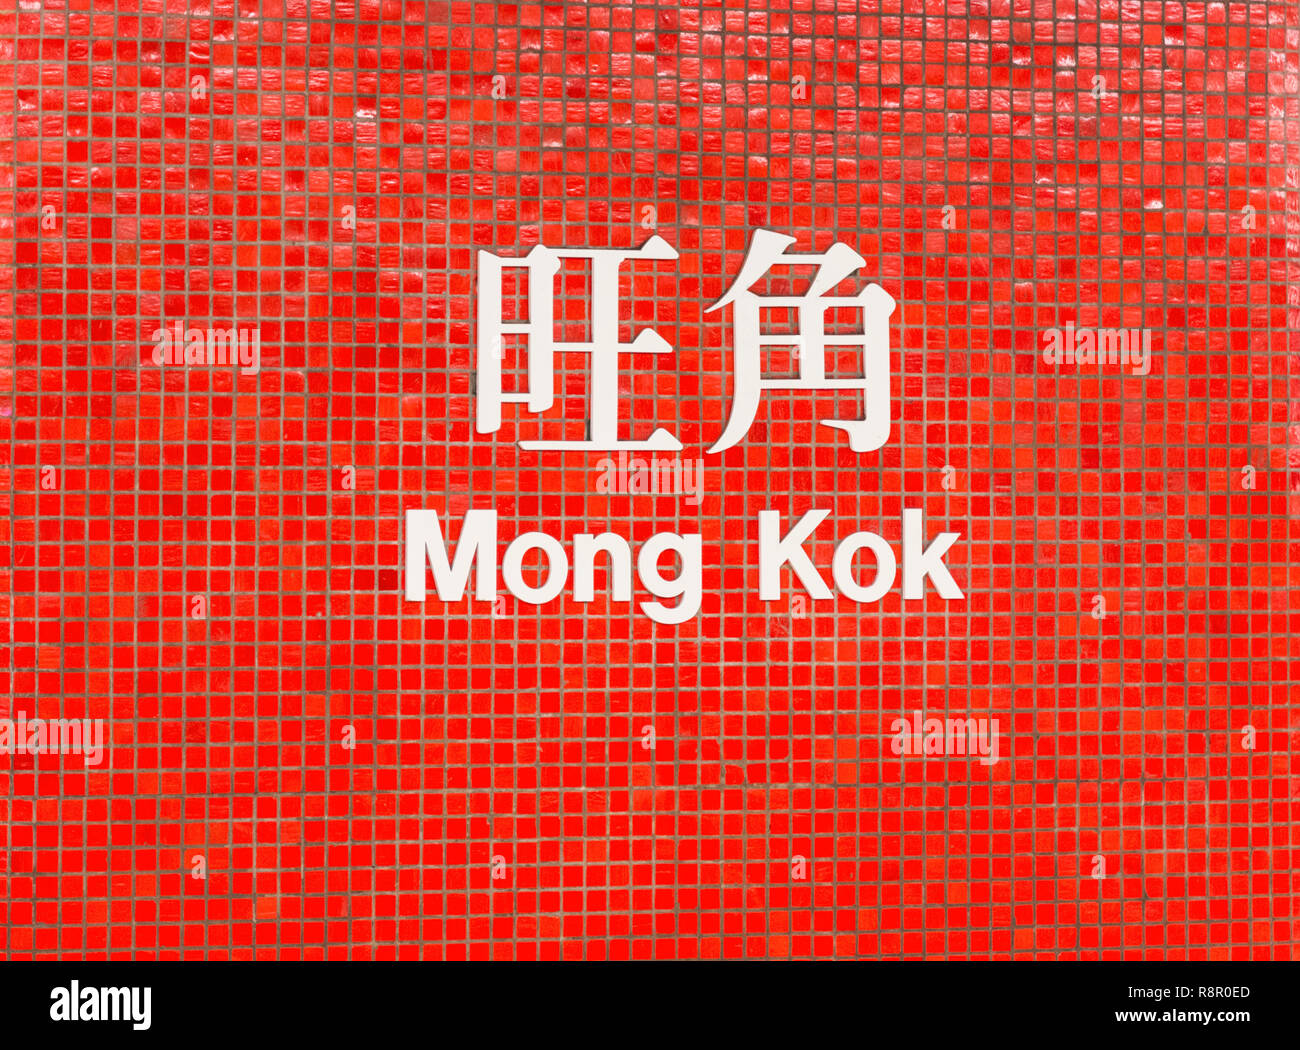 Mong Kok sign on the red mosaic wall of the underground MTR train station, Mong Kok, Kowloon, Hong Kong - Stock Image